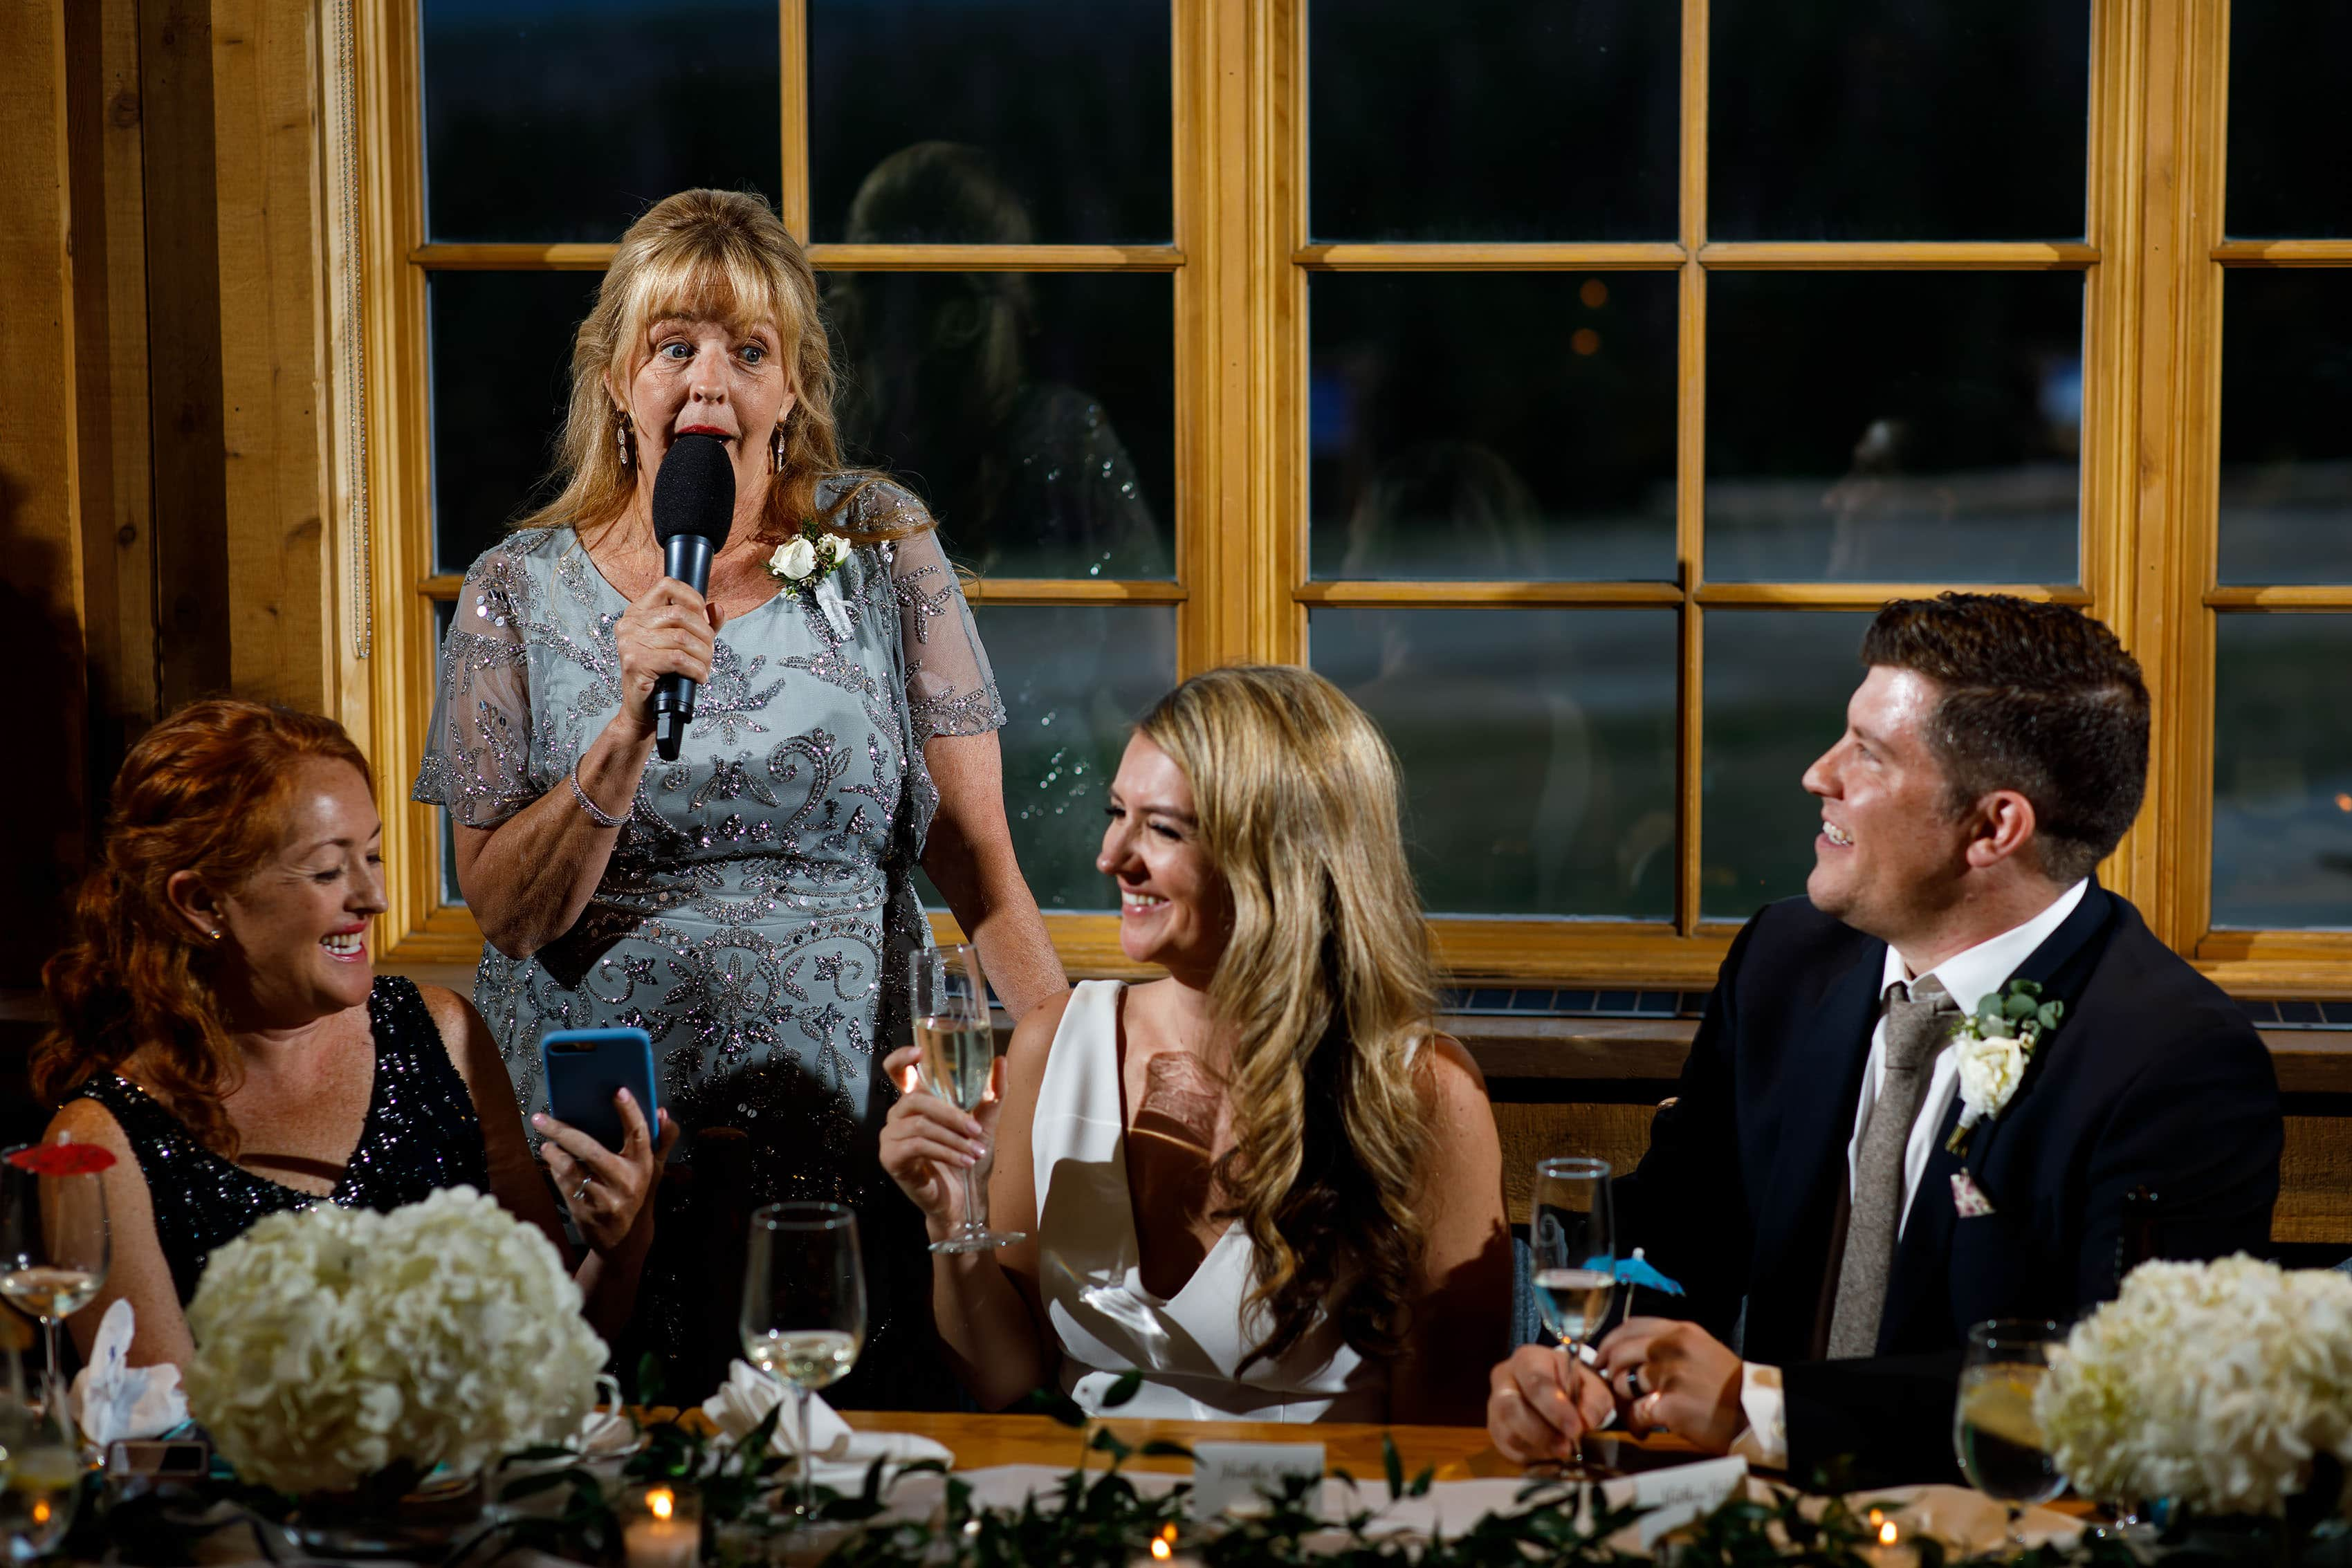 Heather mother gives a toast